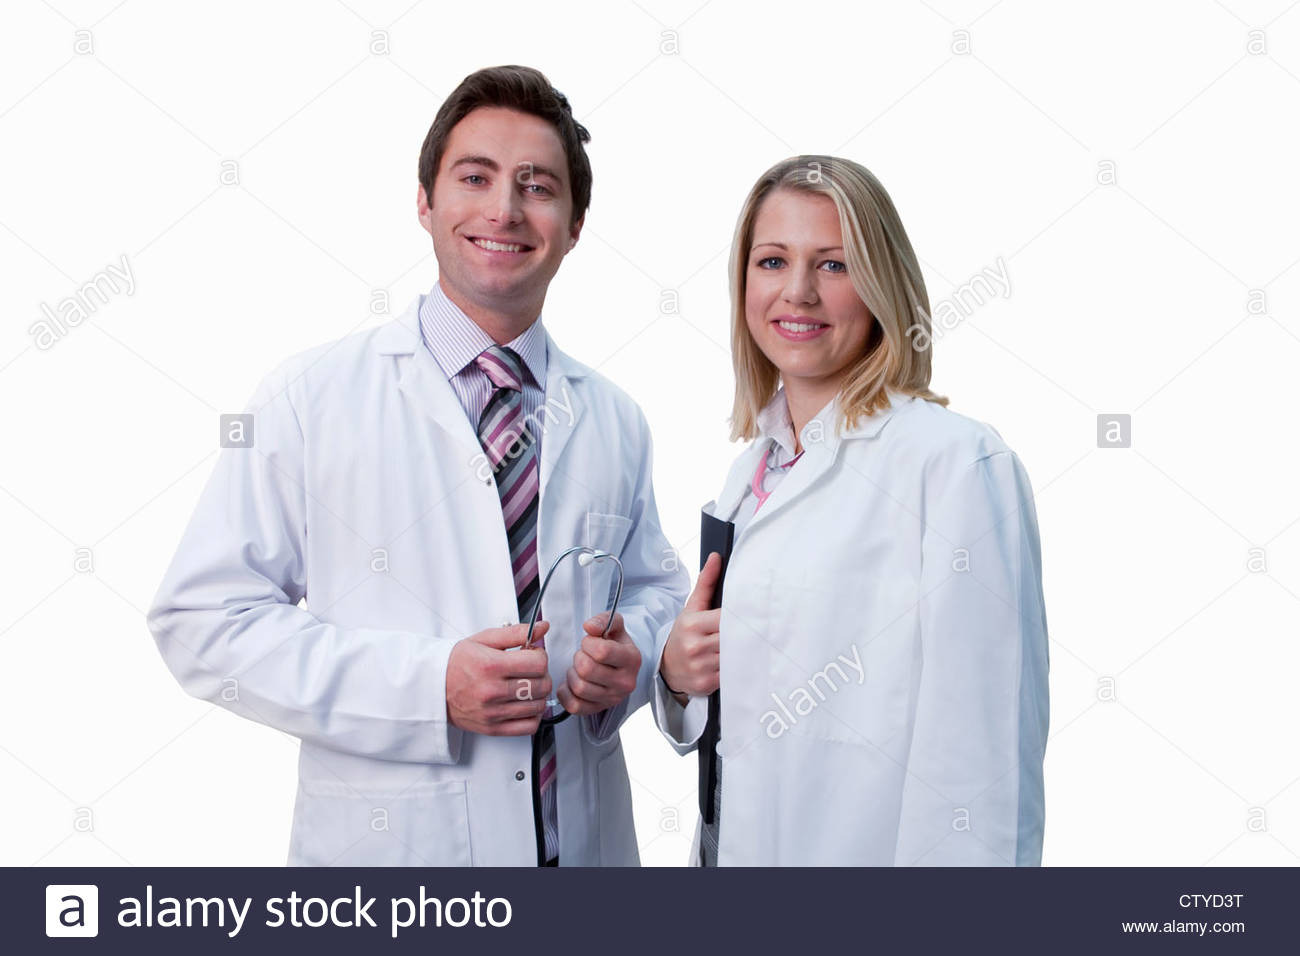 Cut Out Of Male And Female Doctors Wearing White Coats Stock Photo ...